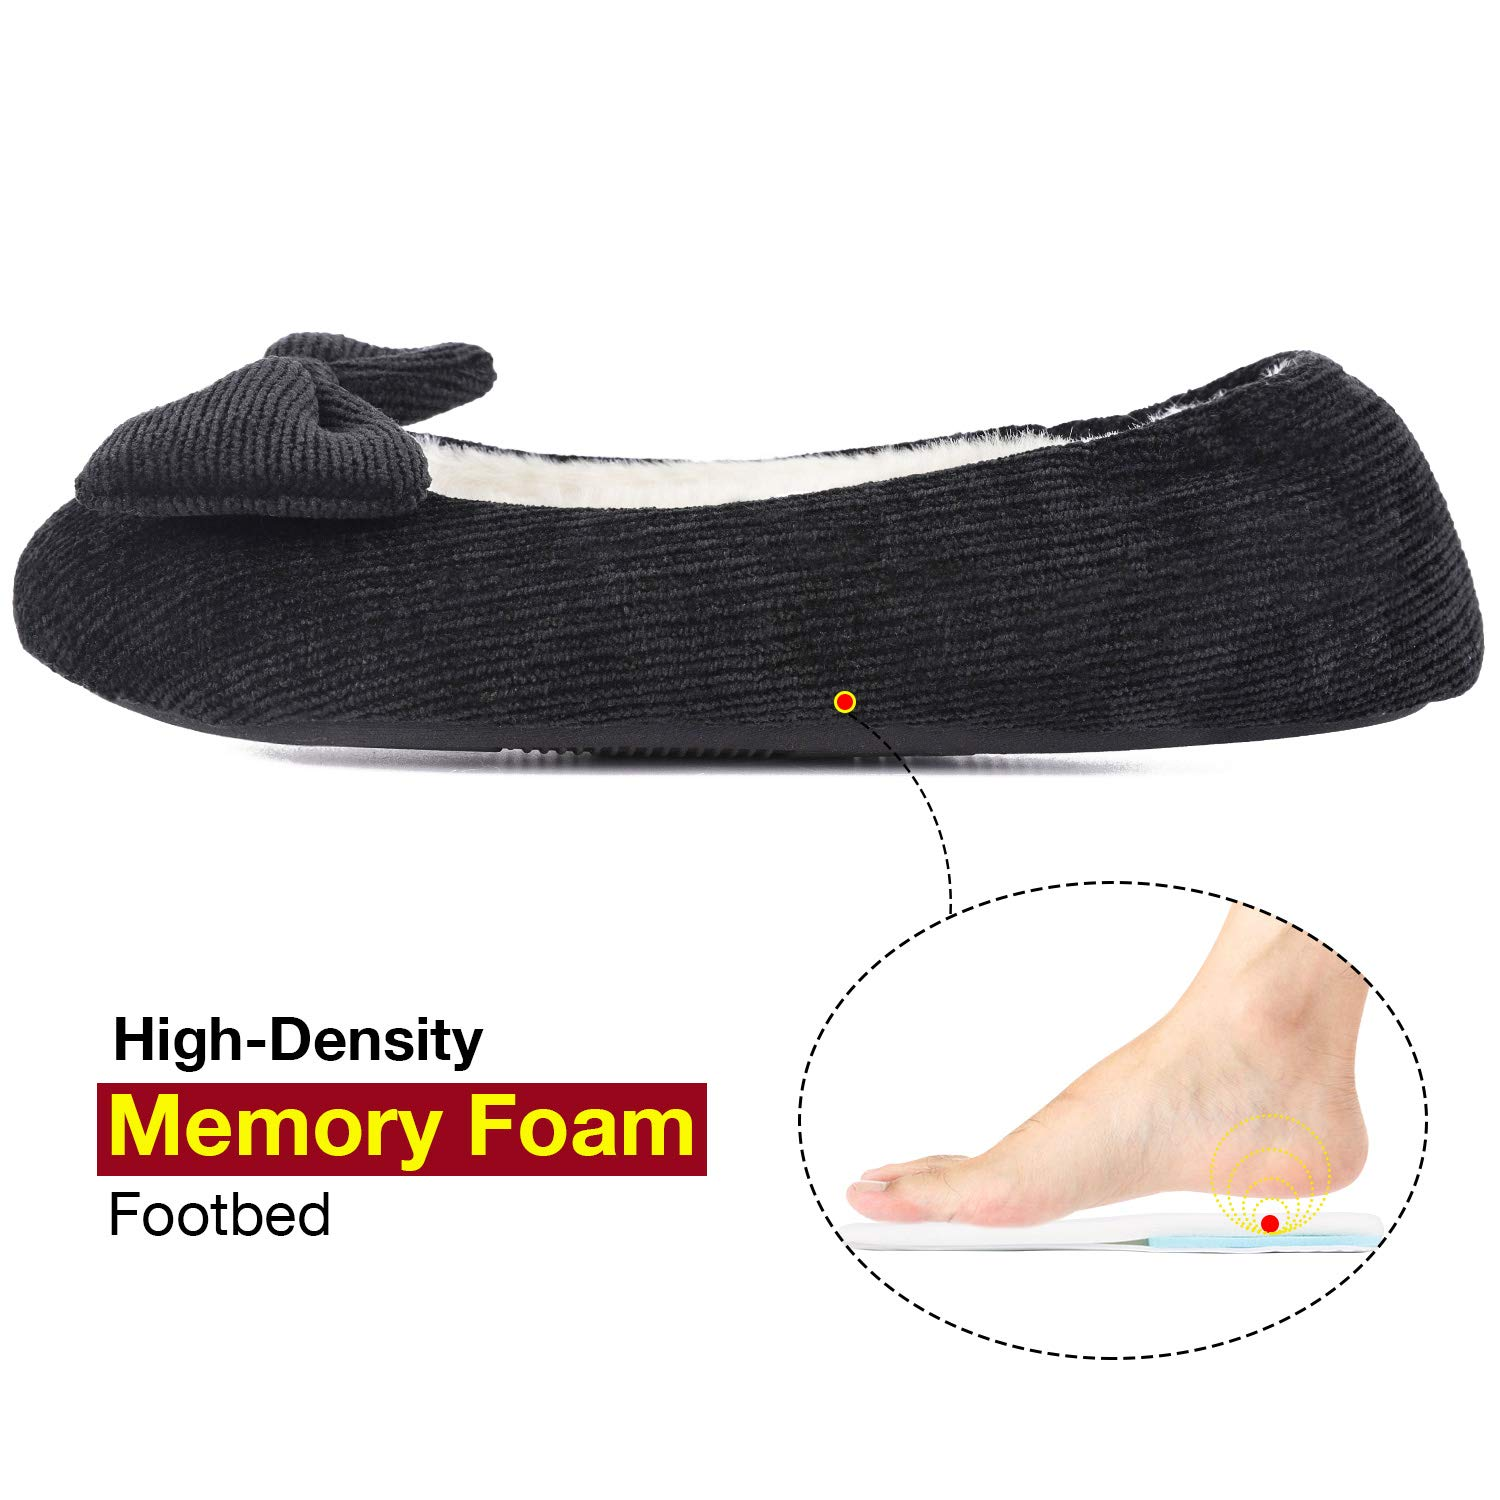 VeraCosy Womens Fuzzy Memory Foam Ballerina Slippers Soft Cotton Knit House Shoes with Stretchable Heel